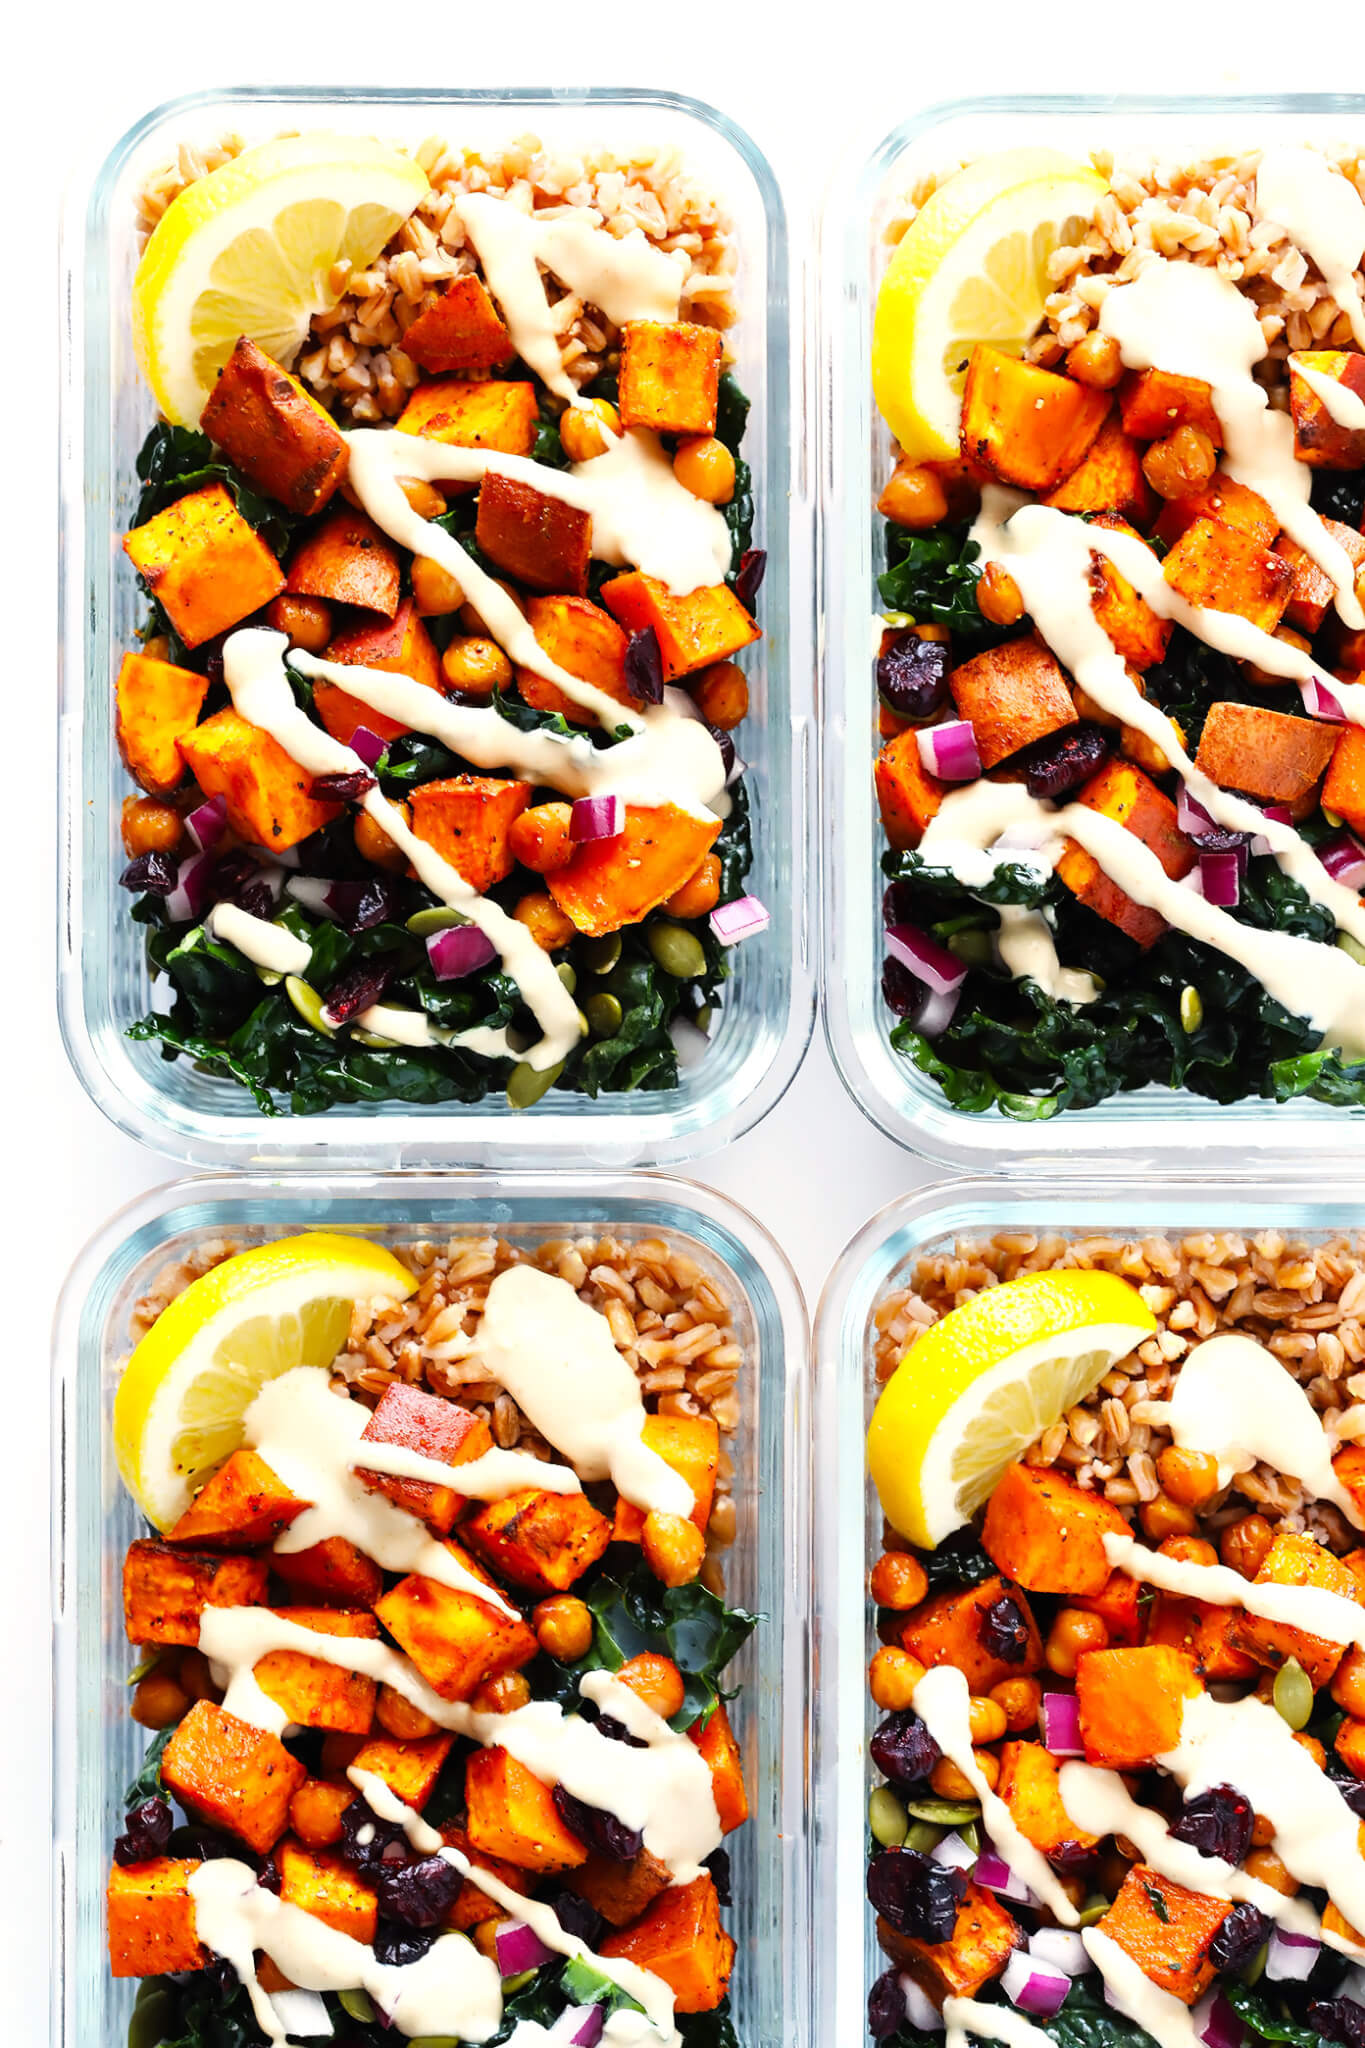 Roasted Sweet Potato Chickpea And Kale Salad Bowls Gimme Some Oven